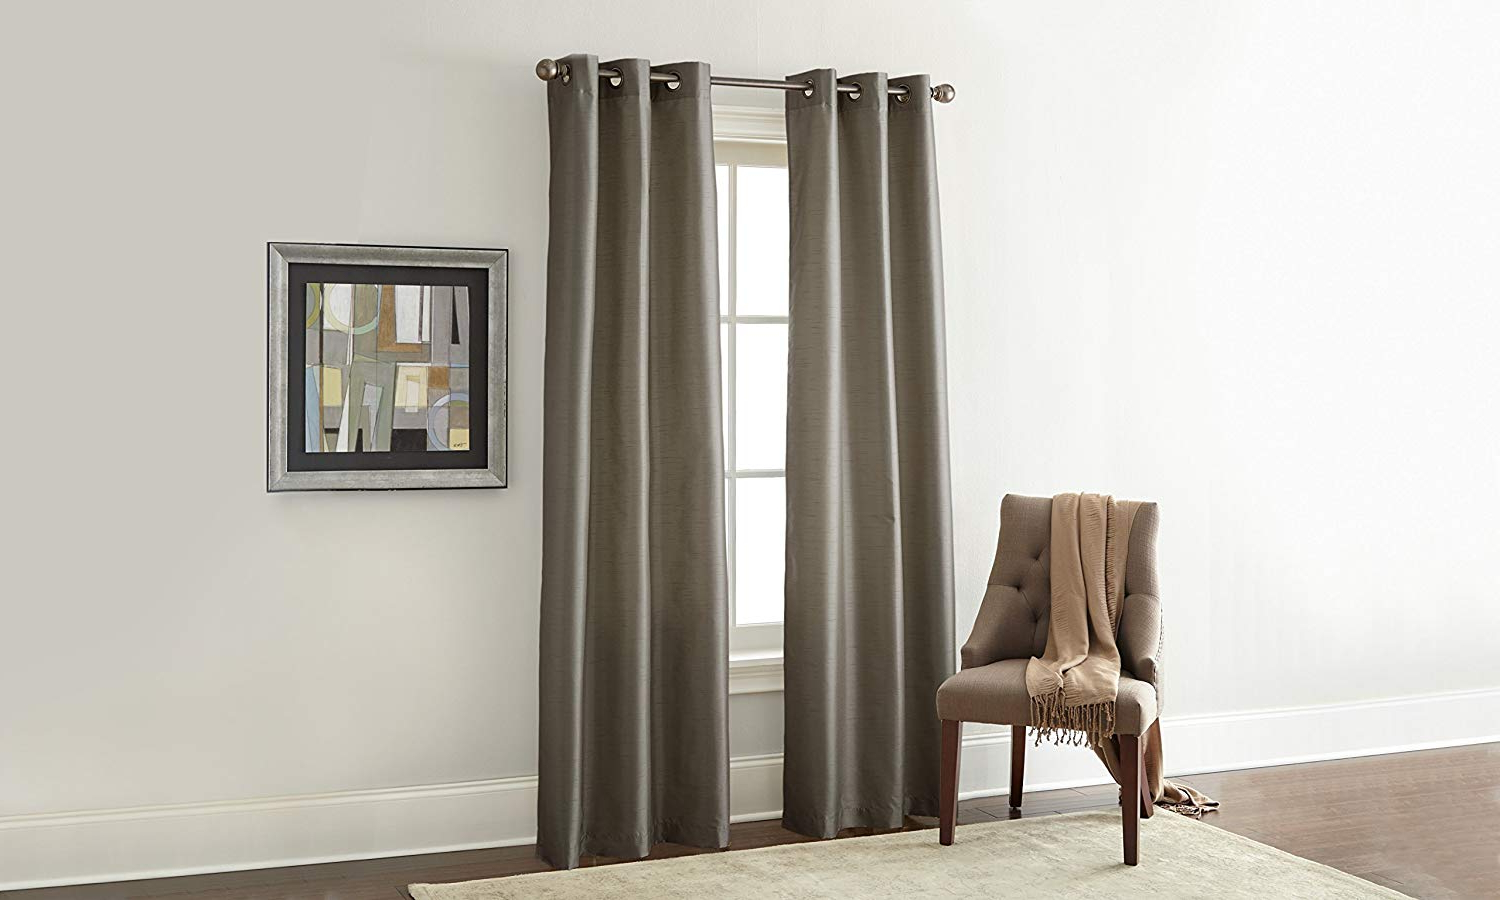 Well Liked Amrapur Overseas Faux Silk Blackout Curtain Panel Pair, 37 X 84, Mocha Pertaining To Overseas Faux Silk Blackout Curtain Panel Pairs (View 19 of 20)